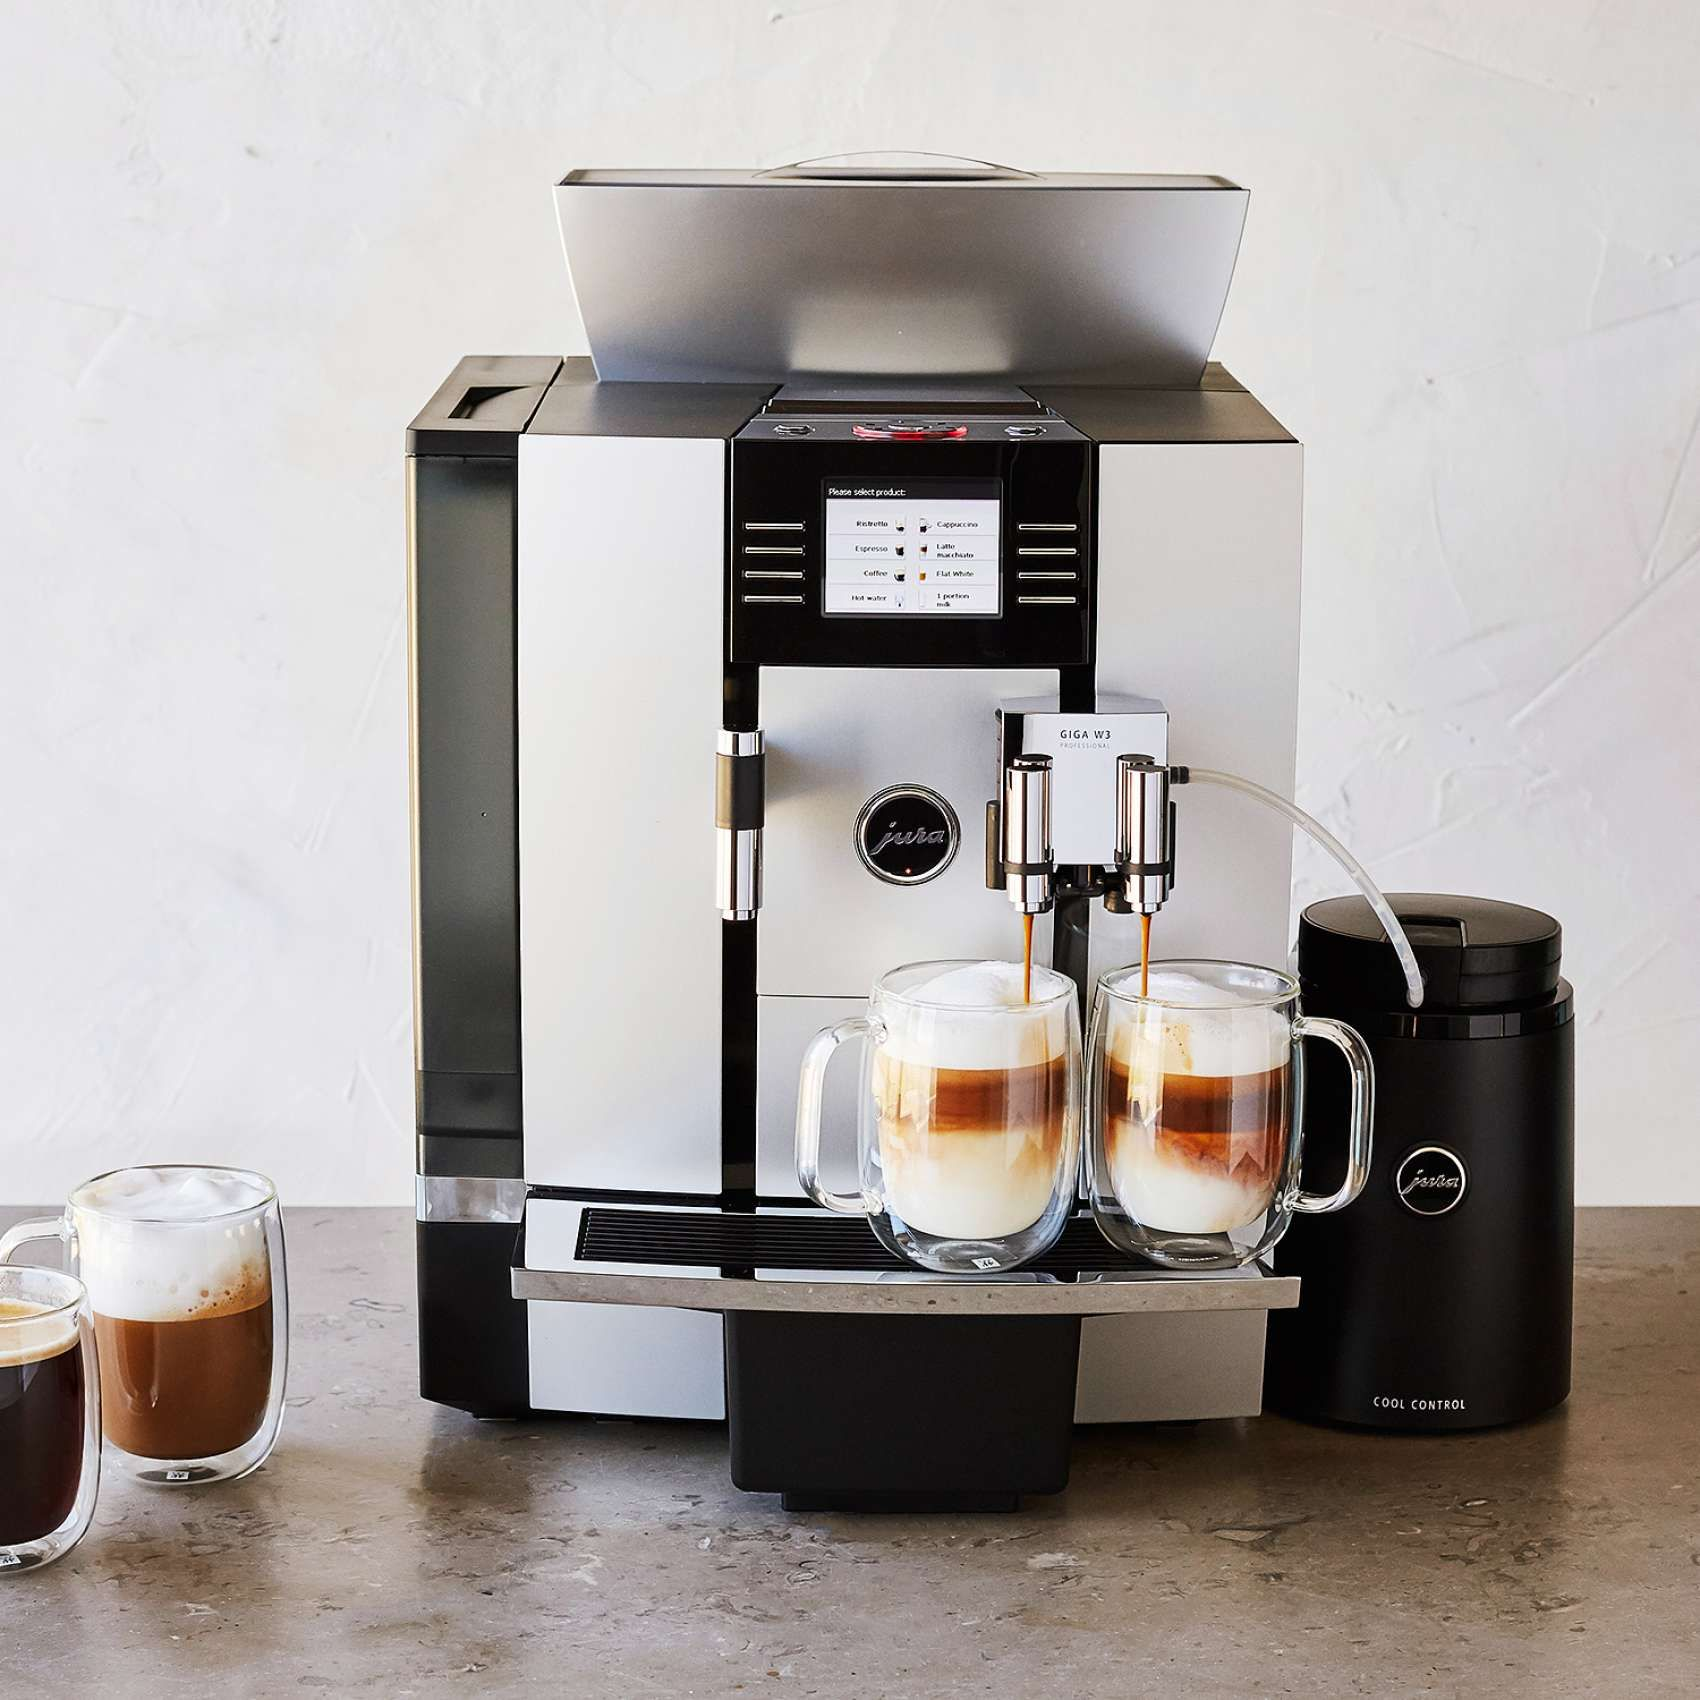 JURA GIGA W3 Automatic Coffee Machine #juracoffeemachine